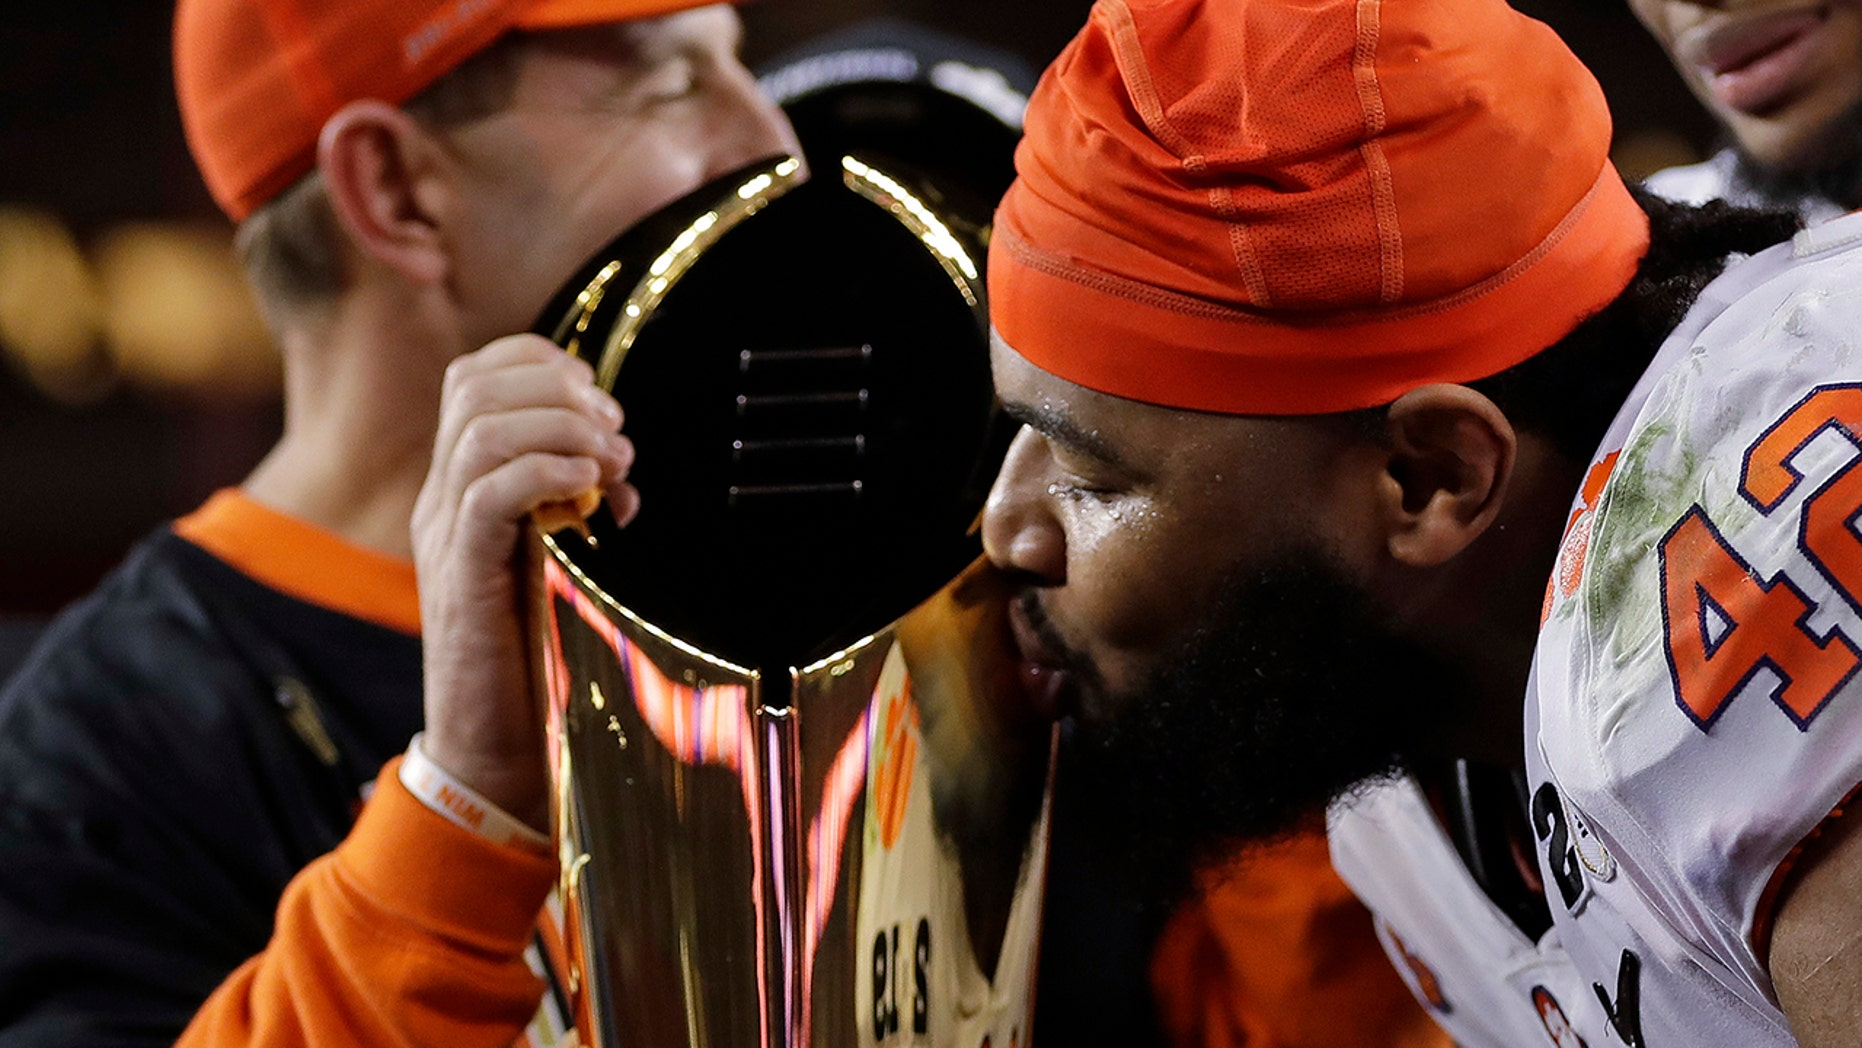 Clemson's Christian Wilkins kisses the trophy after the NCAA college football playoff championship game against Alabama, Monday, Jan. 7, 2019, in Santa Clara, Calif. Clemson beat Alabama 44-16.